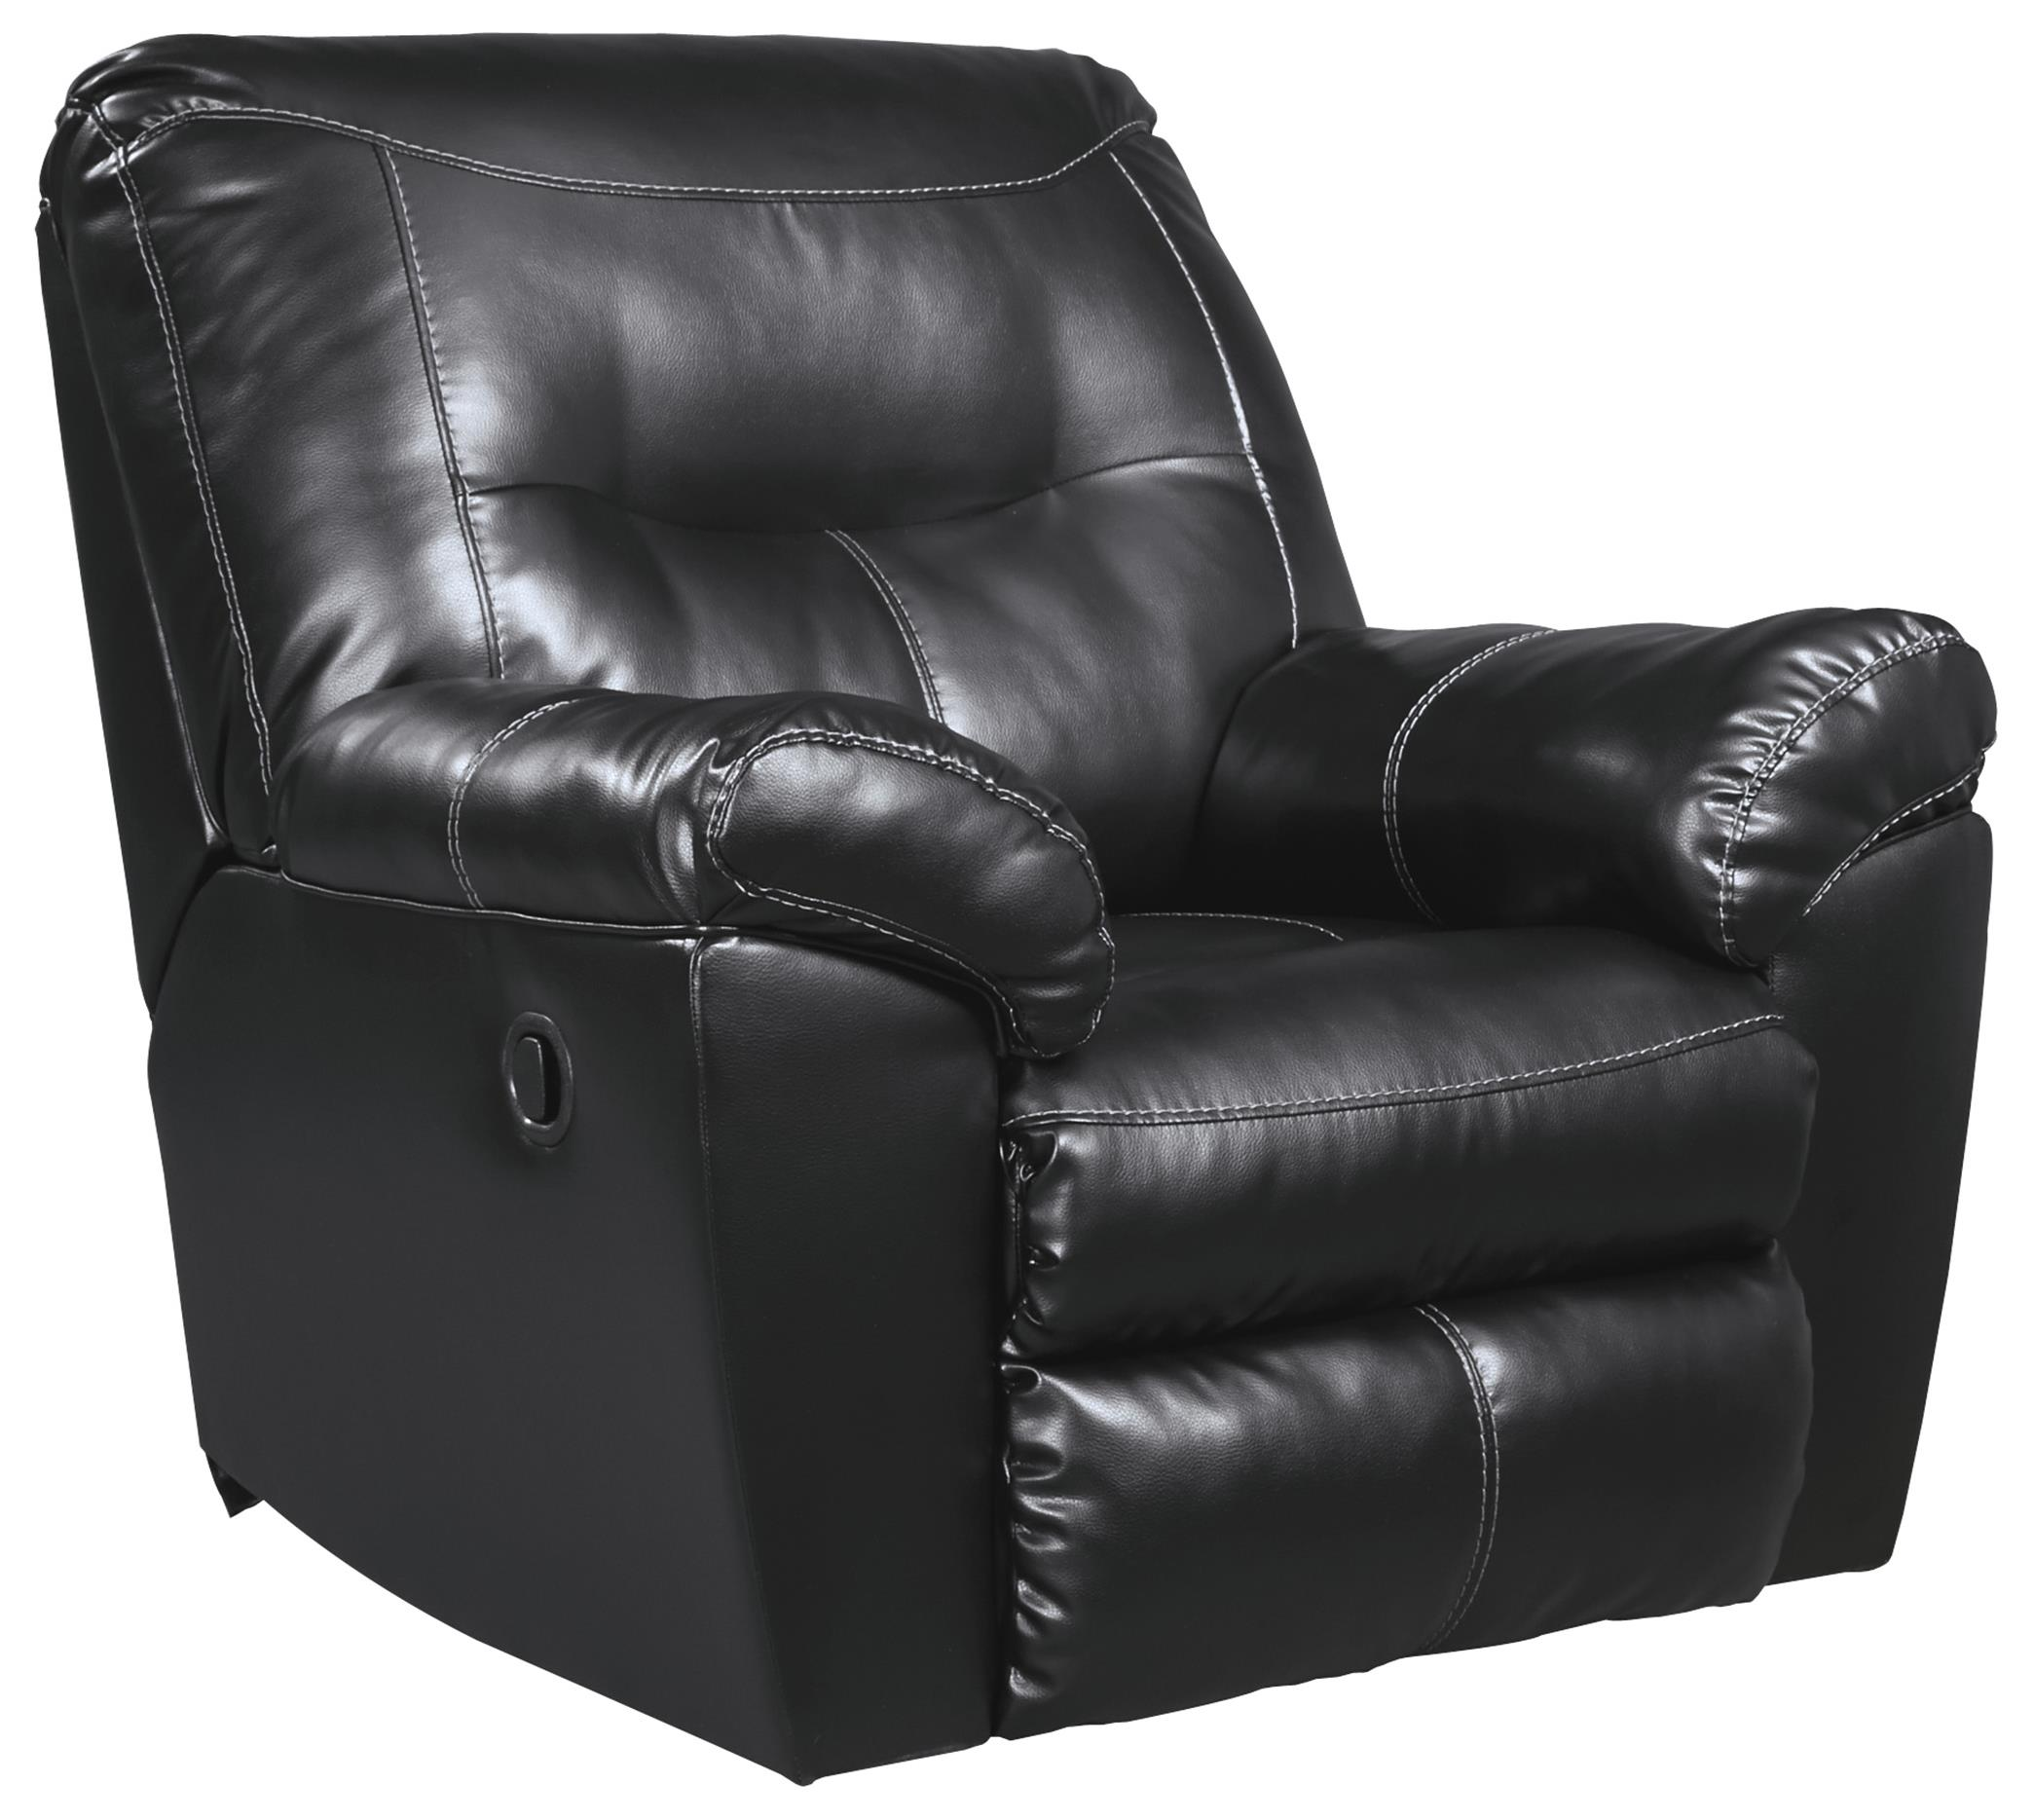 Signature Design by Ashley Kilzer DuraBlend® Rocker Recliner - Item Number: 8470125